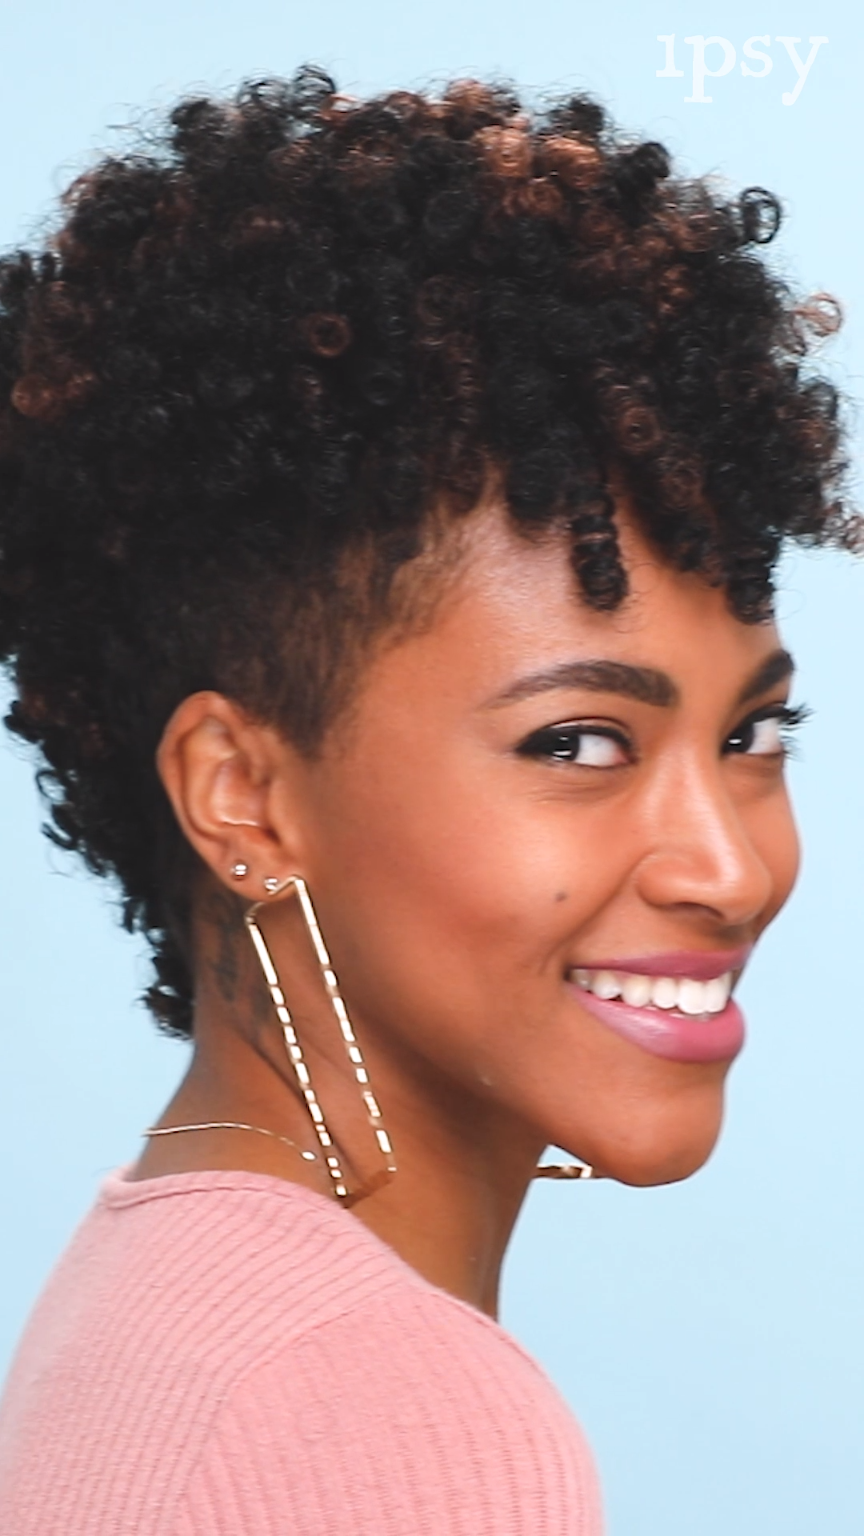 How To: Crochet Braids Mohawk | ipsy Mane Event: Take your hair to new heights with our mohawk crochet braid tutorial! #crochetbraids